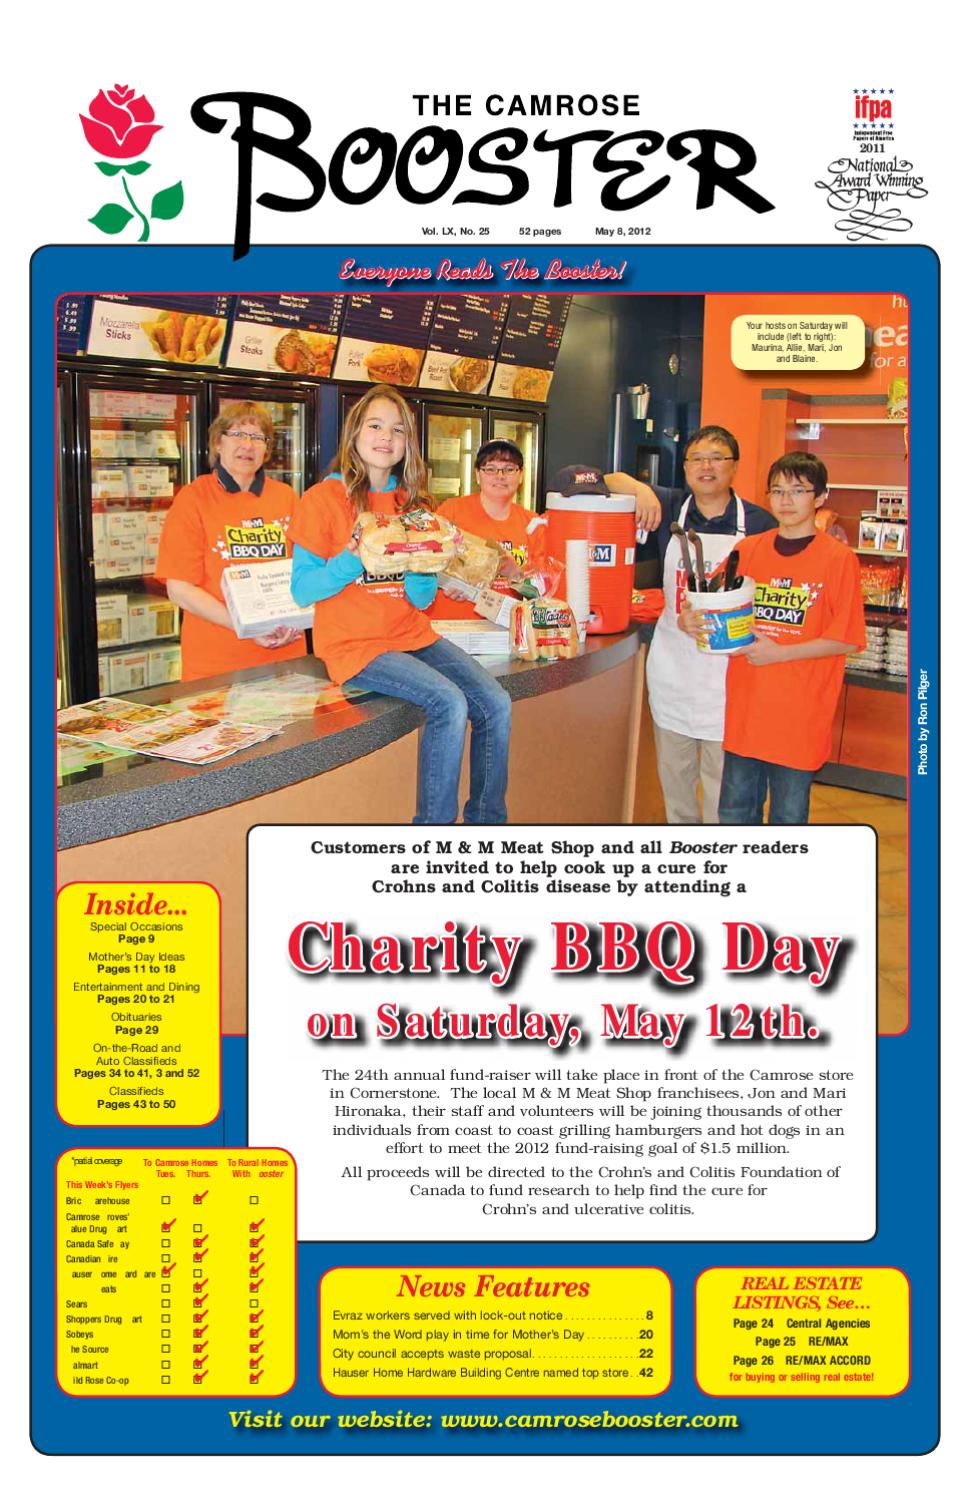 The camrose booster may 8 2012 by the camrose booster issuu stopboris Choice Image